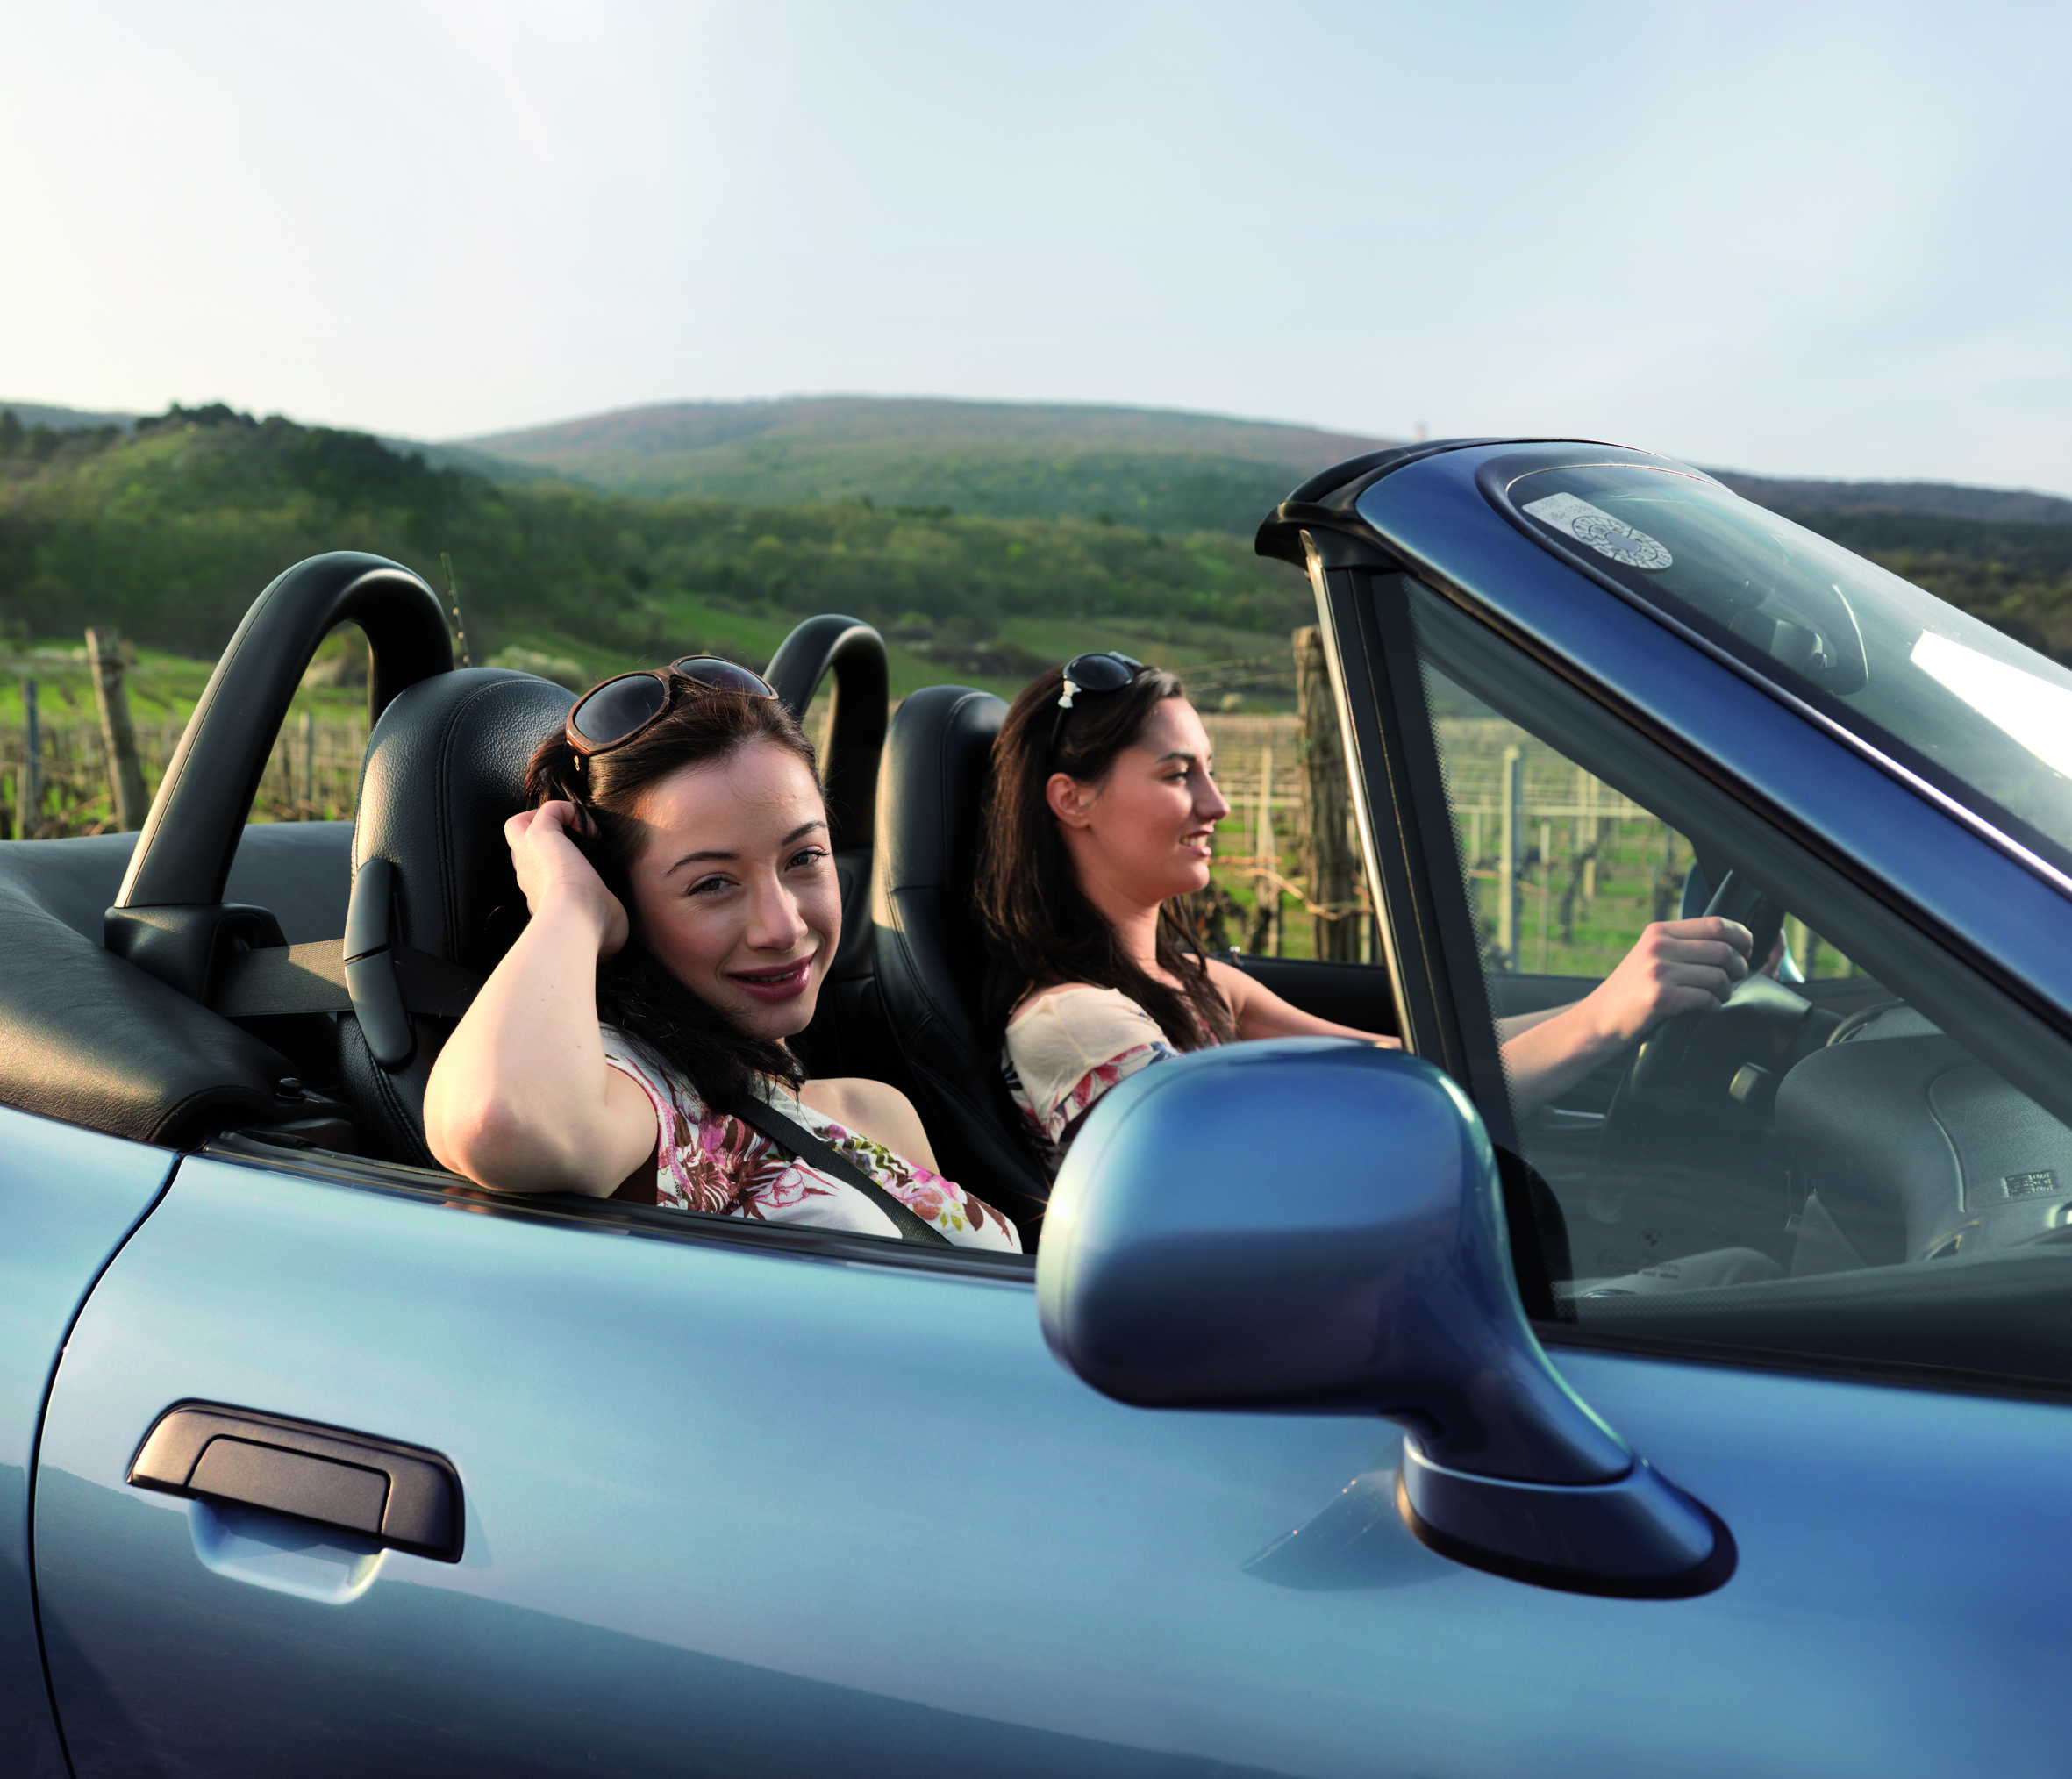 Two women in cabrio